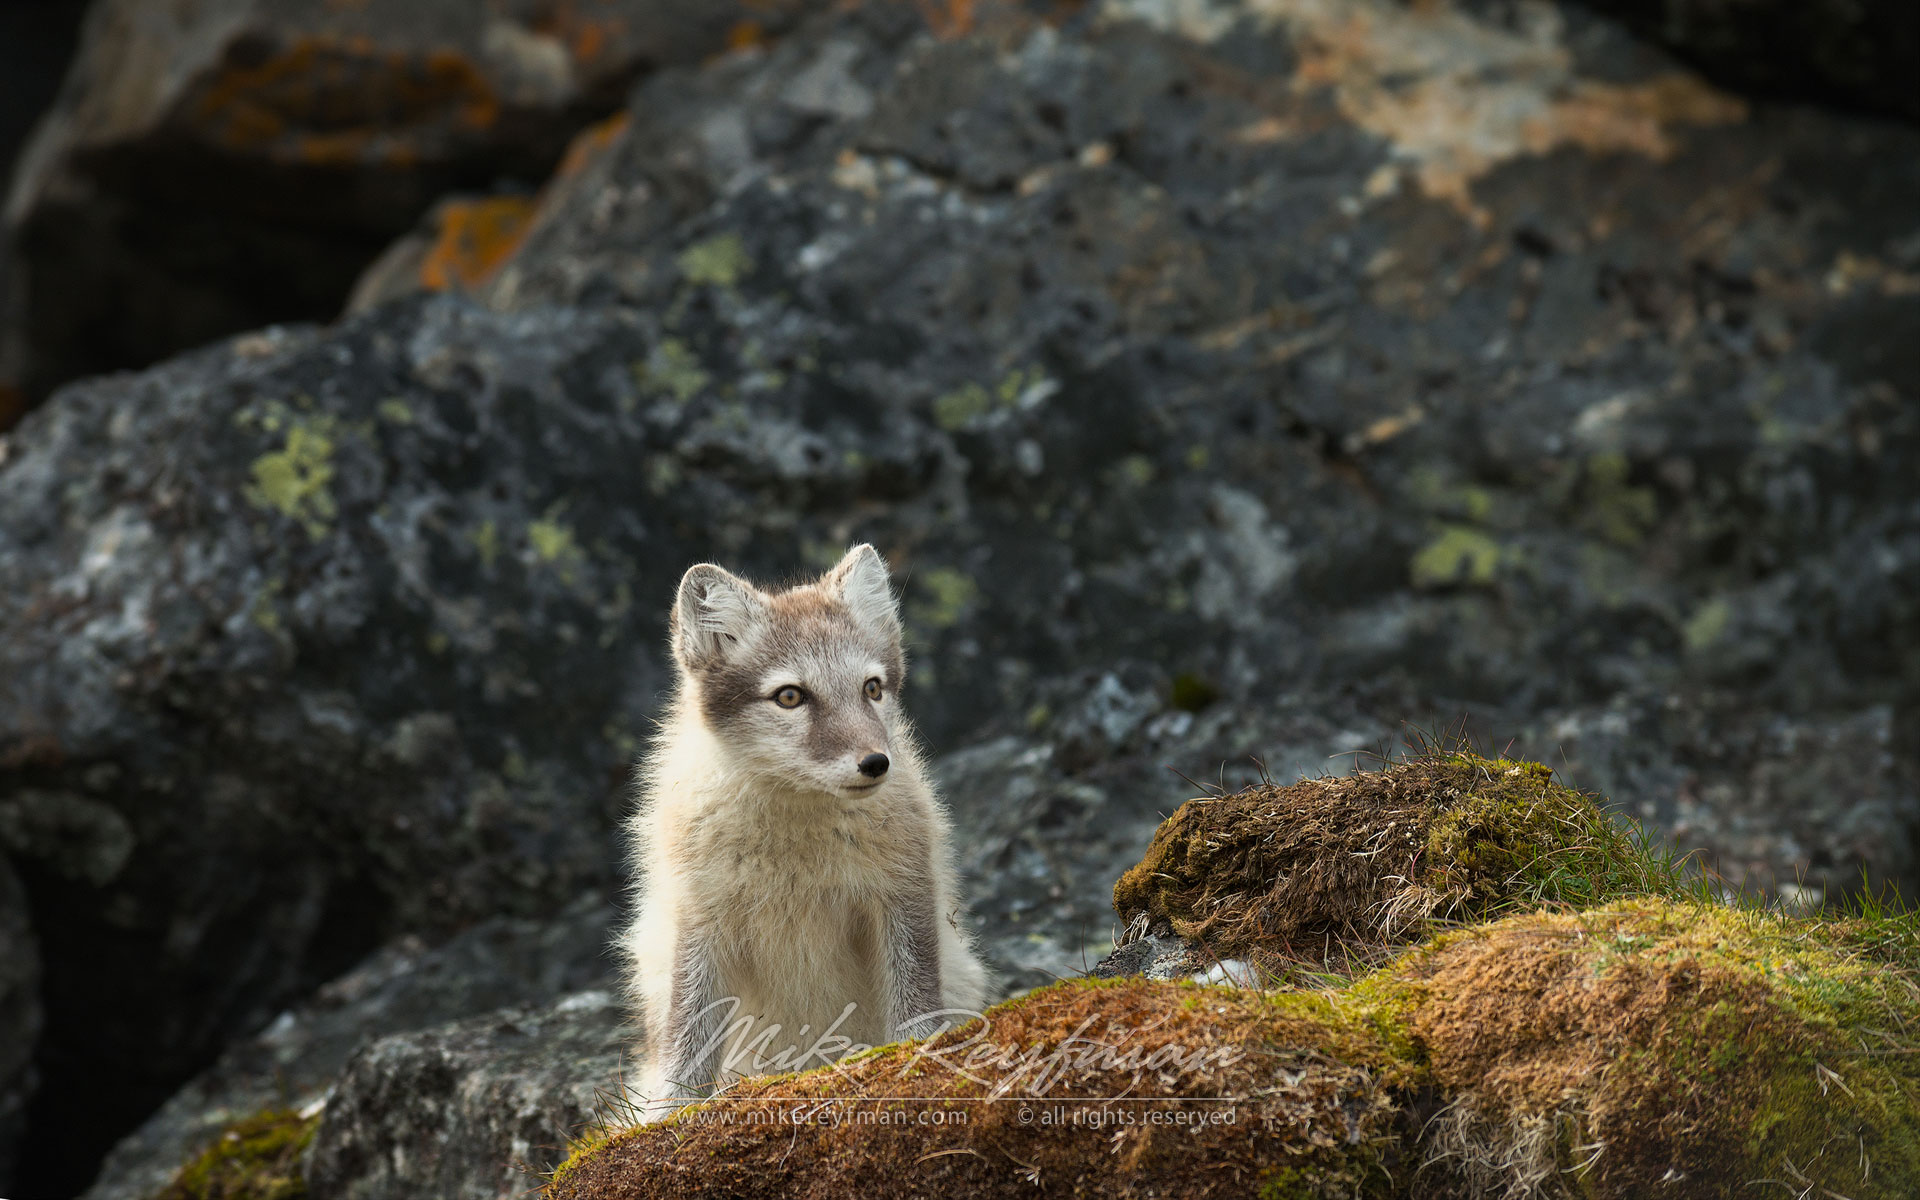 Arctic fox puppy (Alopex lagopus) on a rock, Alkehornet, Spitsbergen, Svalbard, Norway. - Wildlife-Svalbard-Spitsbergen-Norway - Mike Reyfman Photography